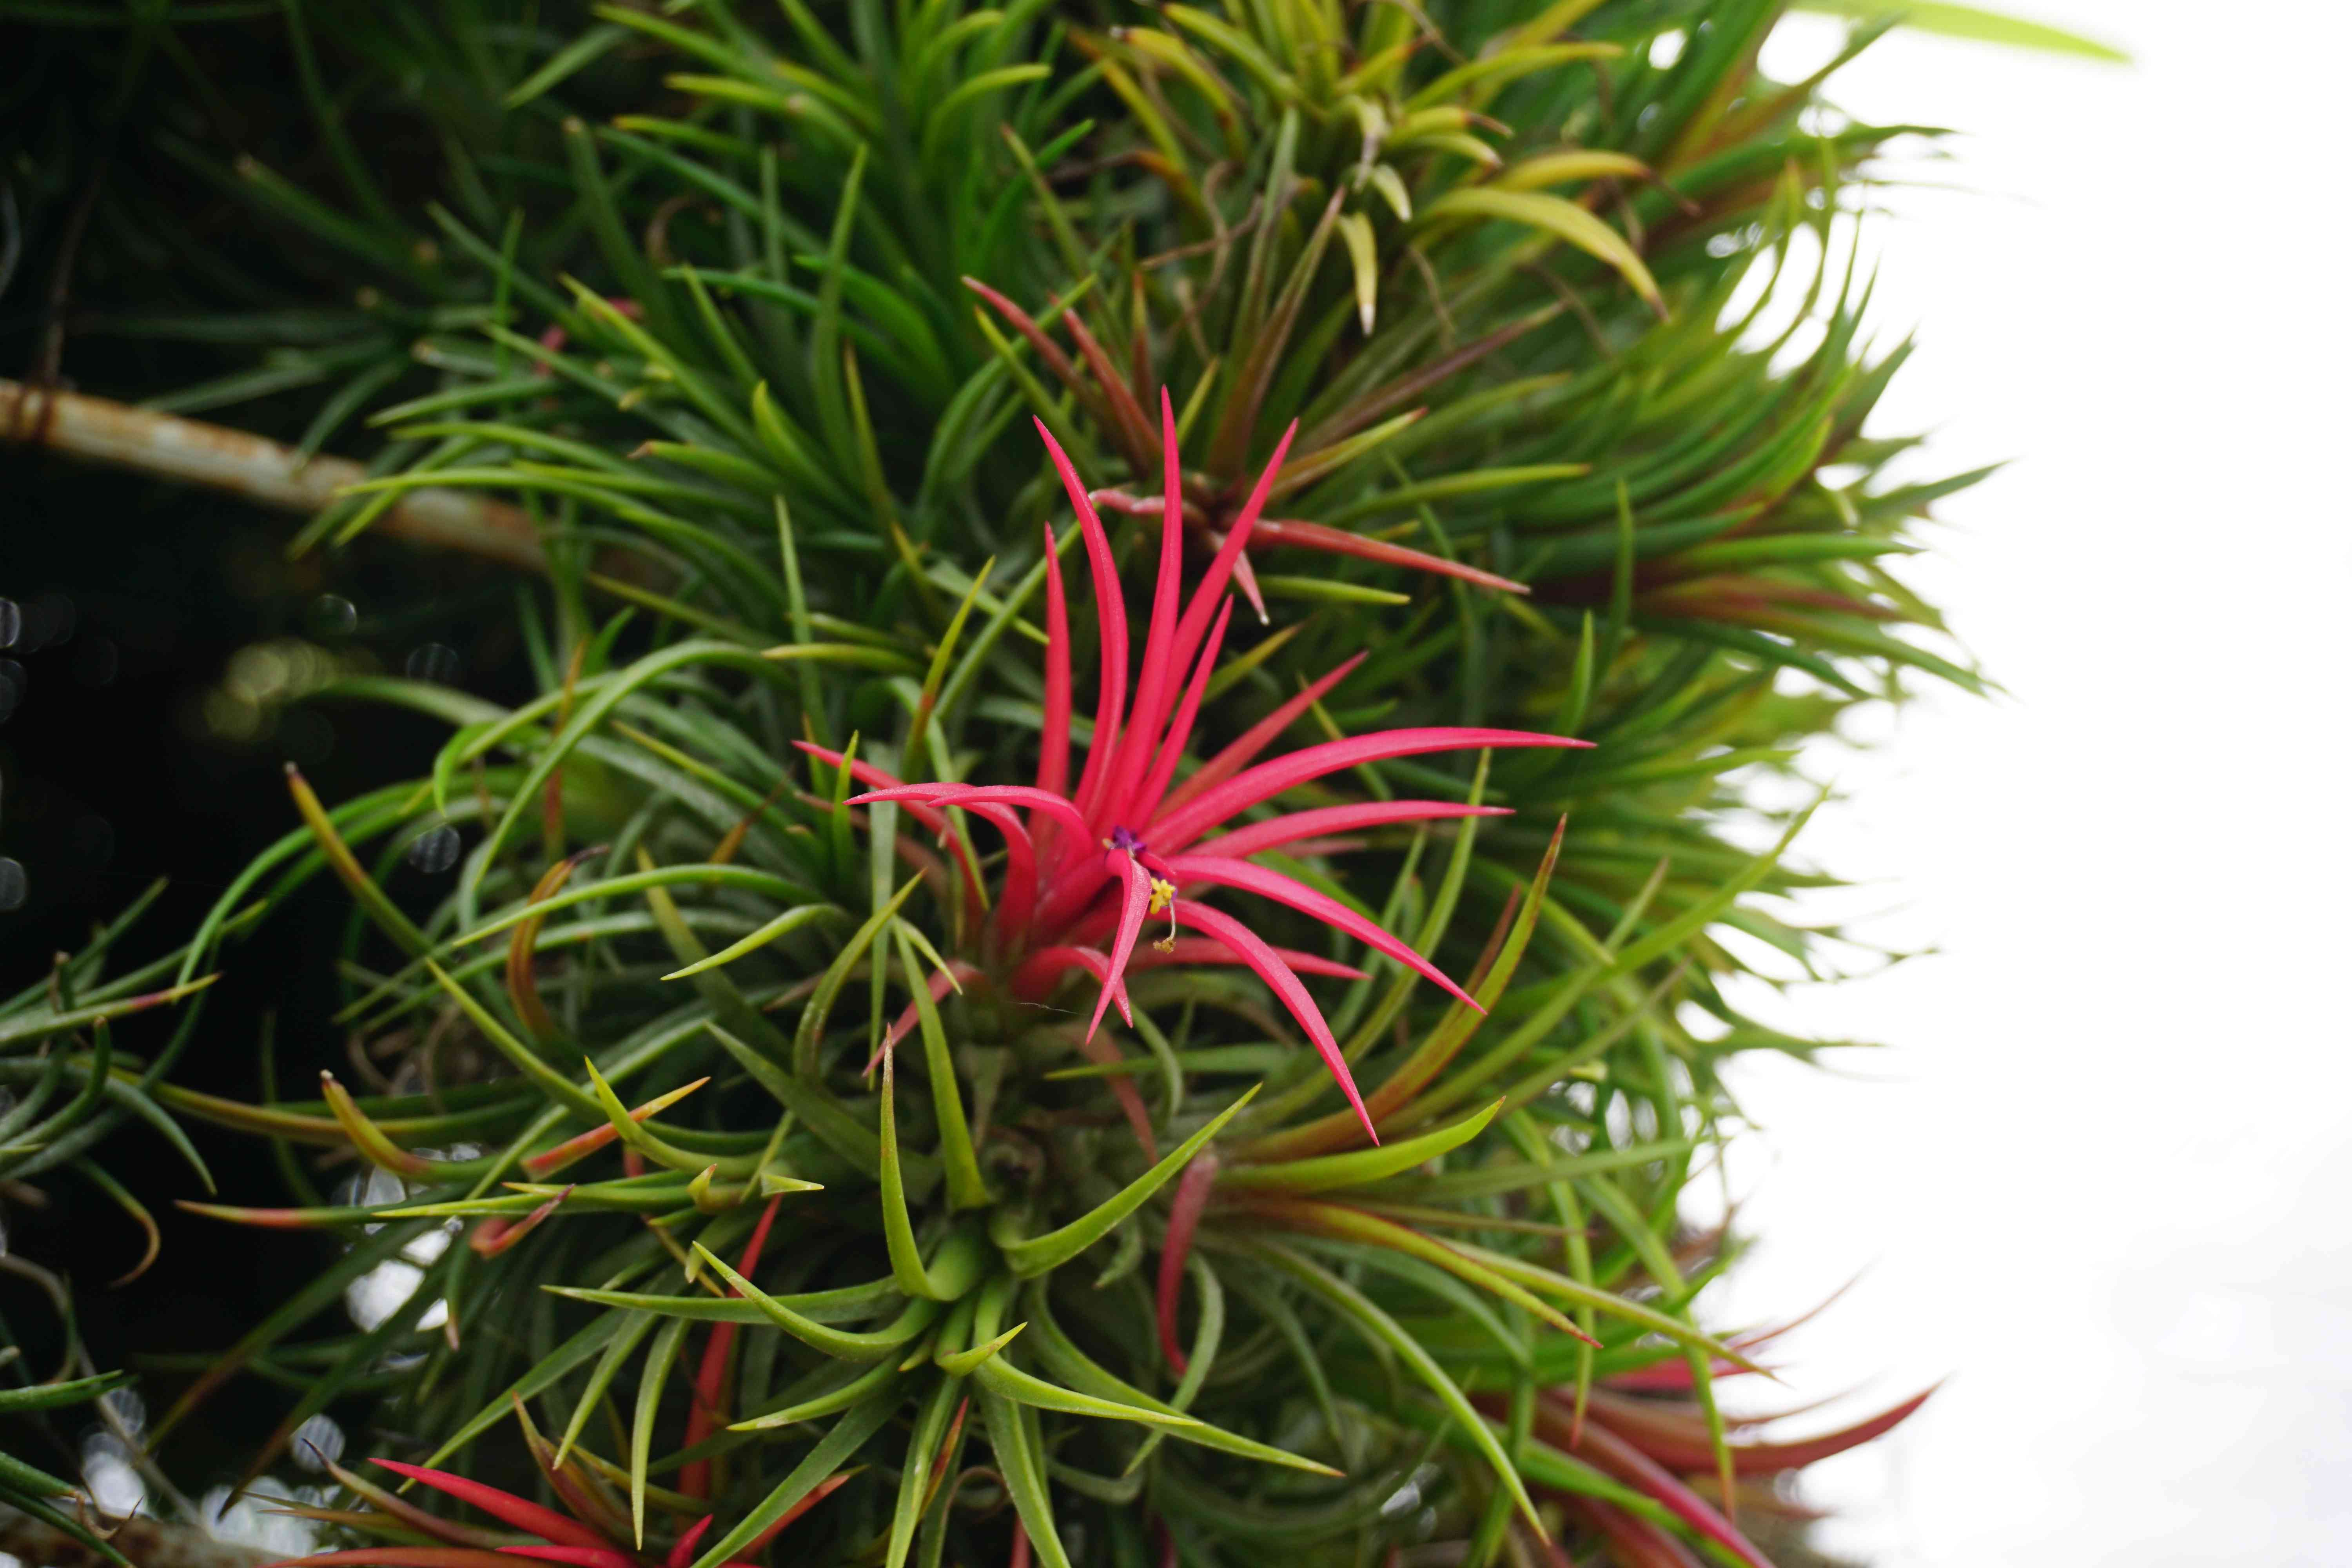 Giant Air Plant with green leaves and hot pink blooms